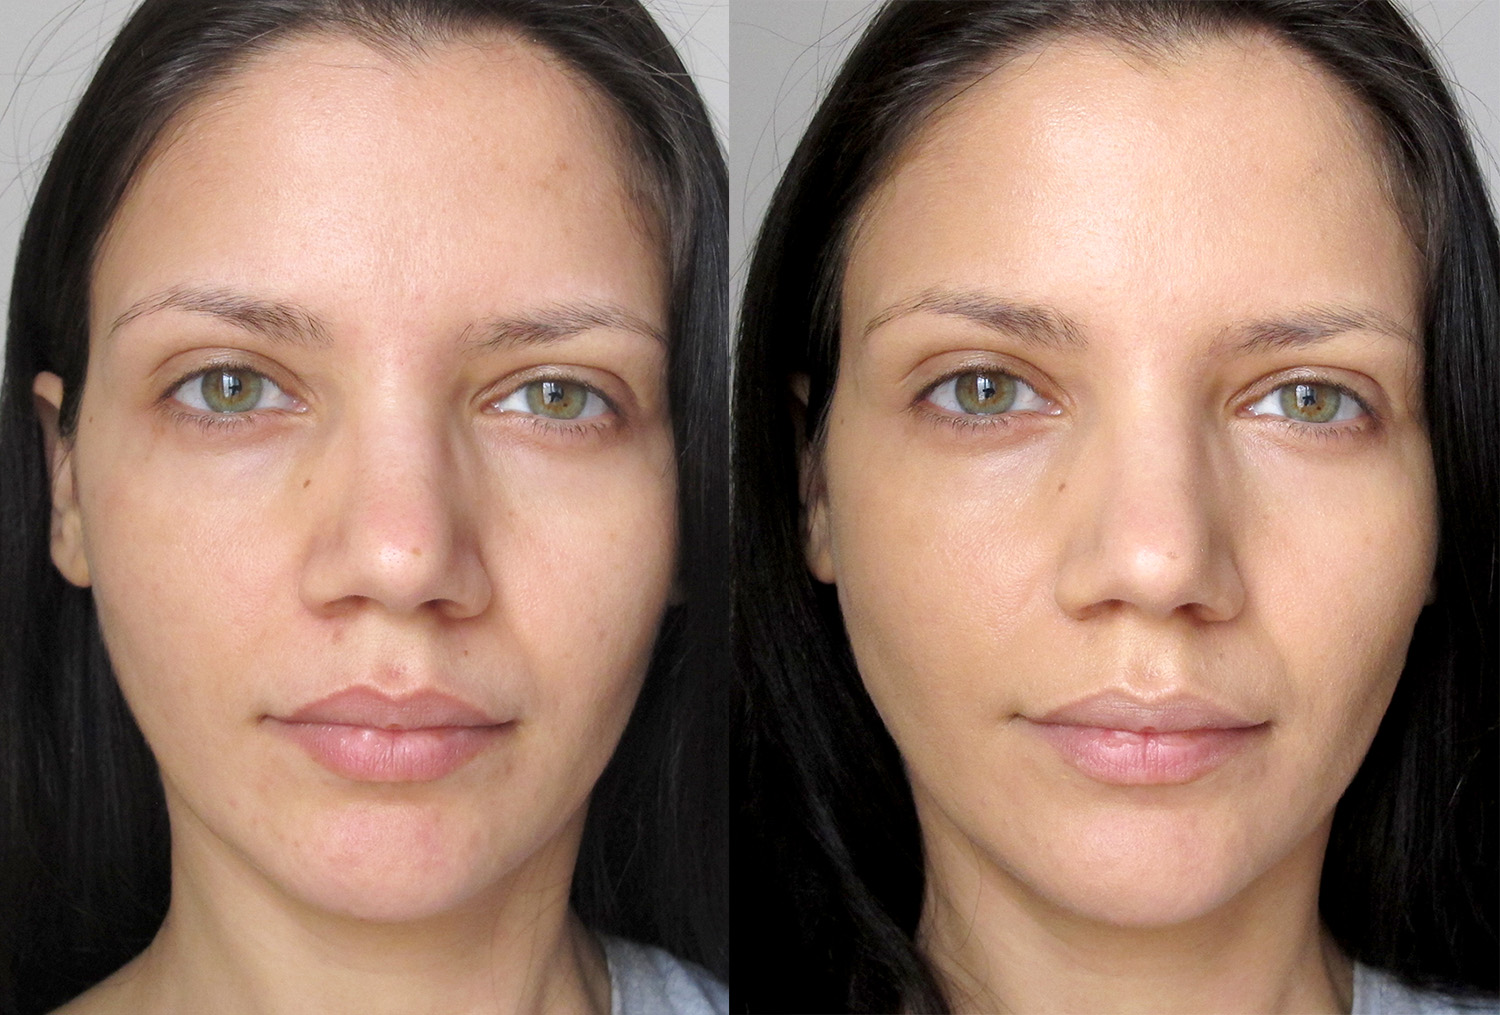 mac-face-and-body-before-after